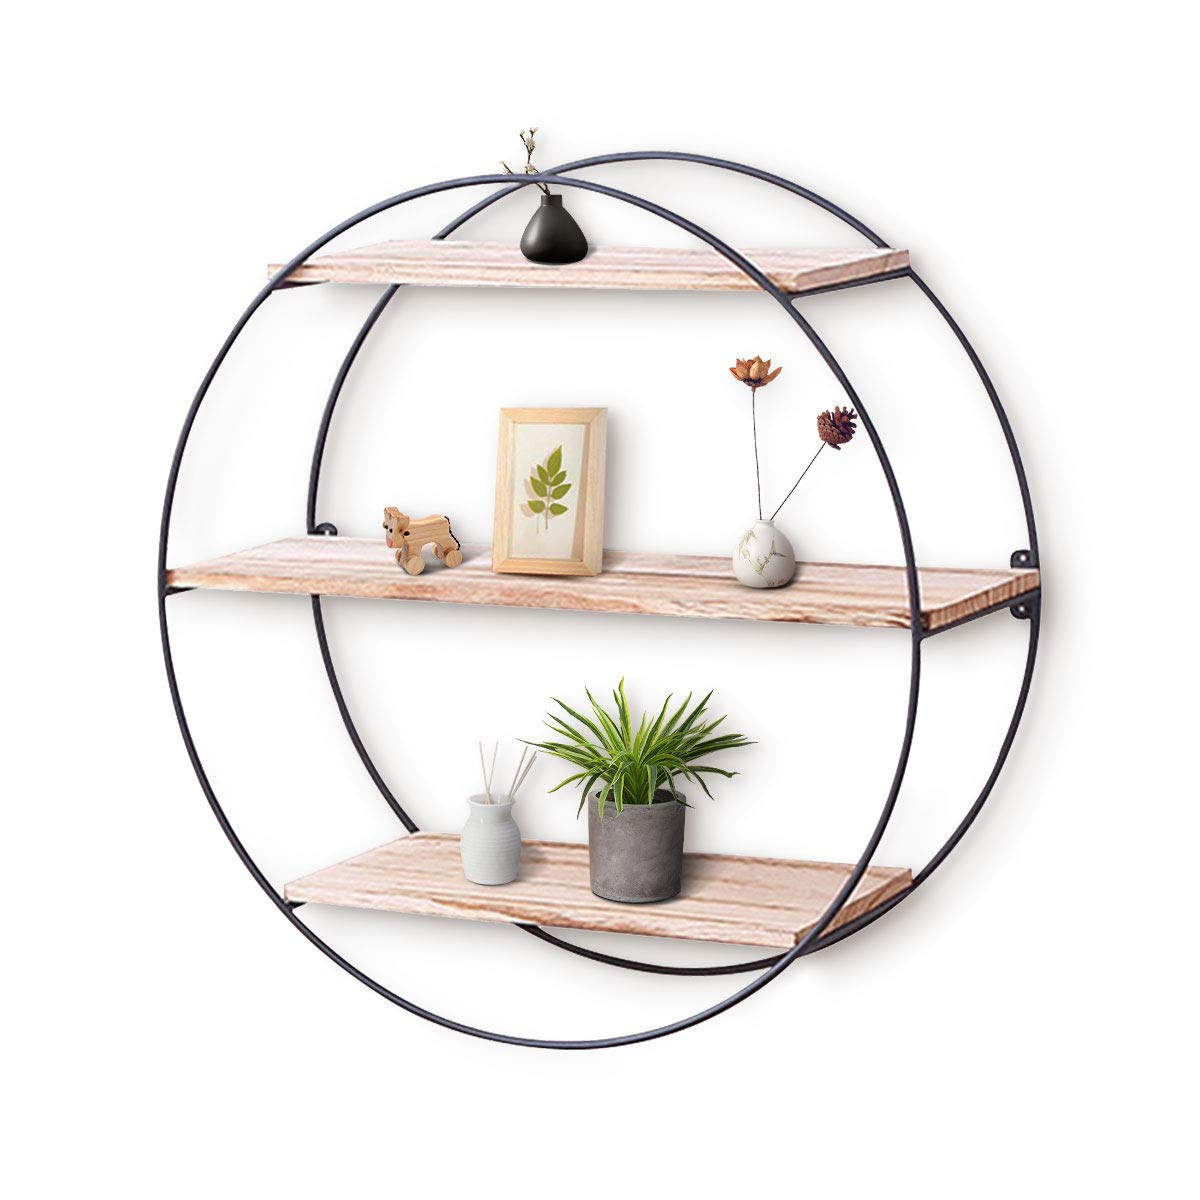 Round Wall Shelf king do way Rustic Wood Floating Shelves,Decorative Wall Shelf for Bedroom, Living Room, Bathroom, Kitchen, Office and More (Round)